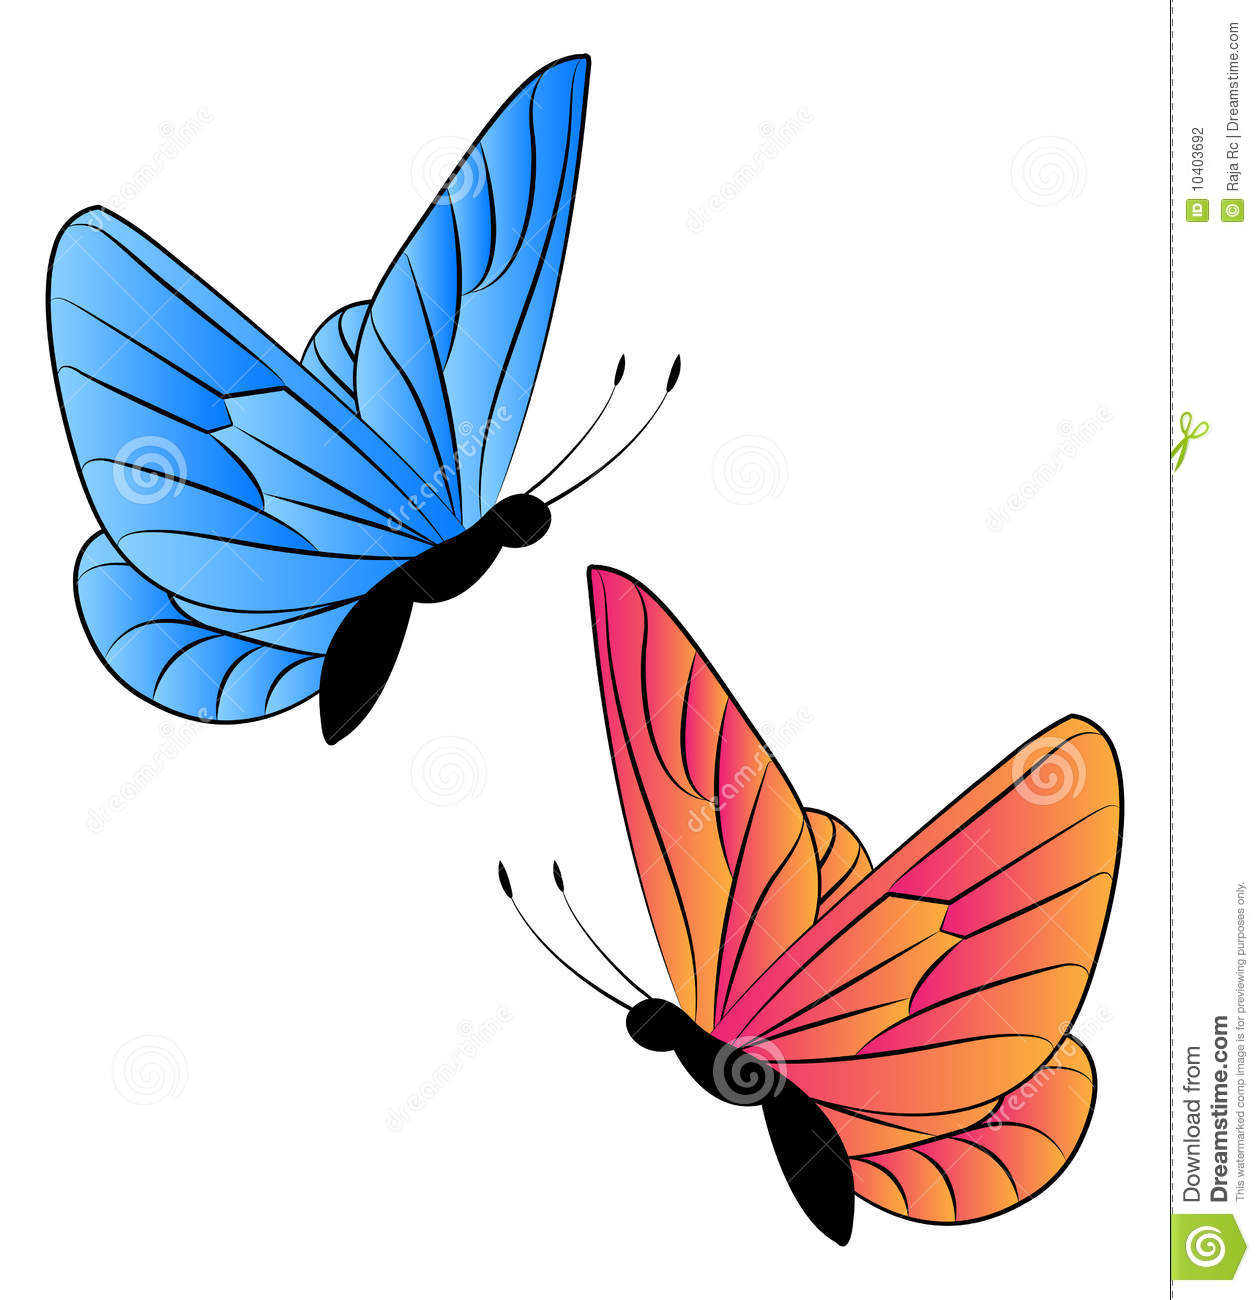 butterfly clipart-butterfly clipart-14